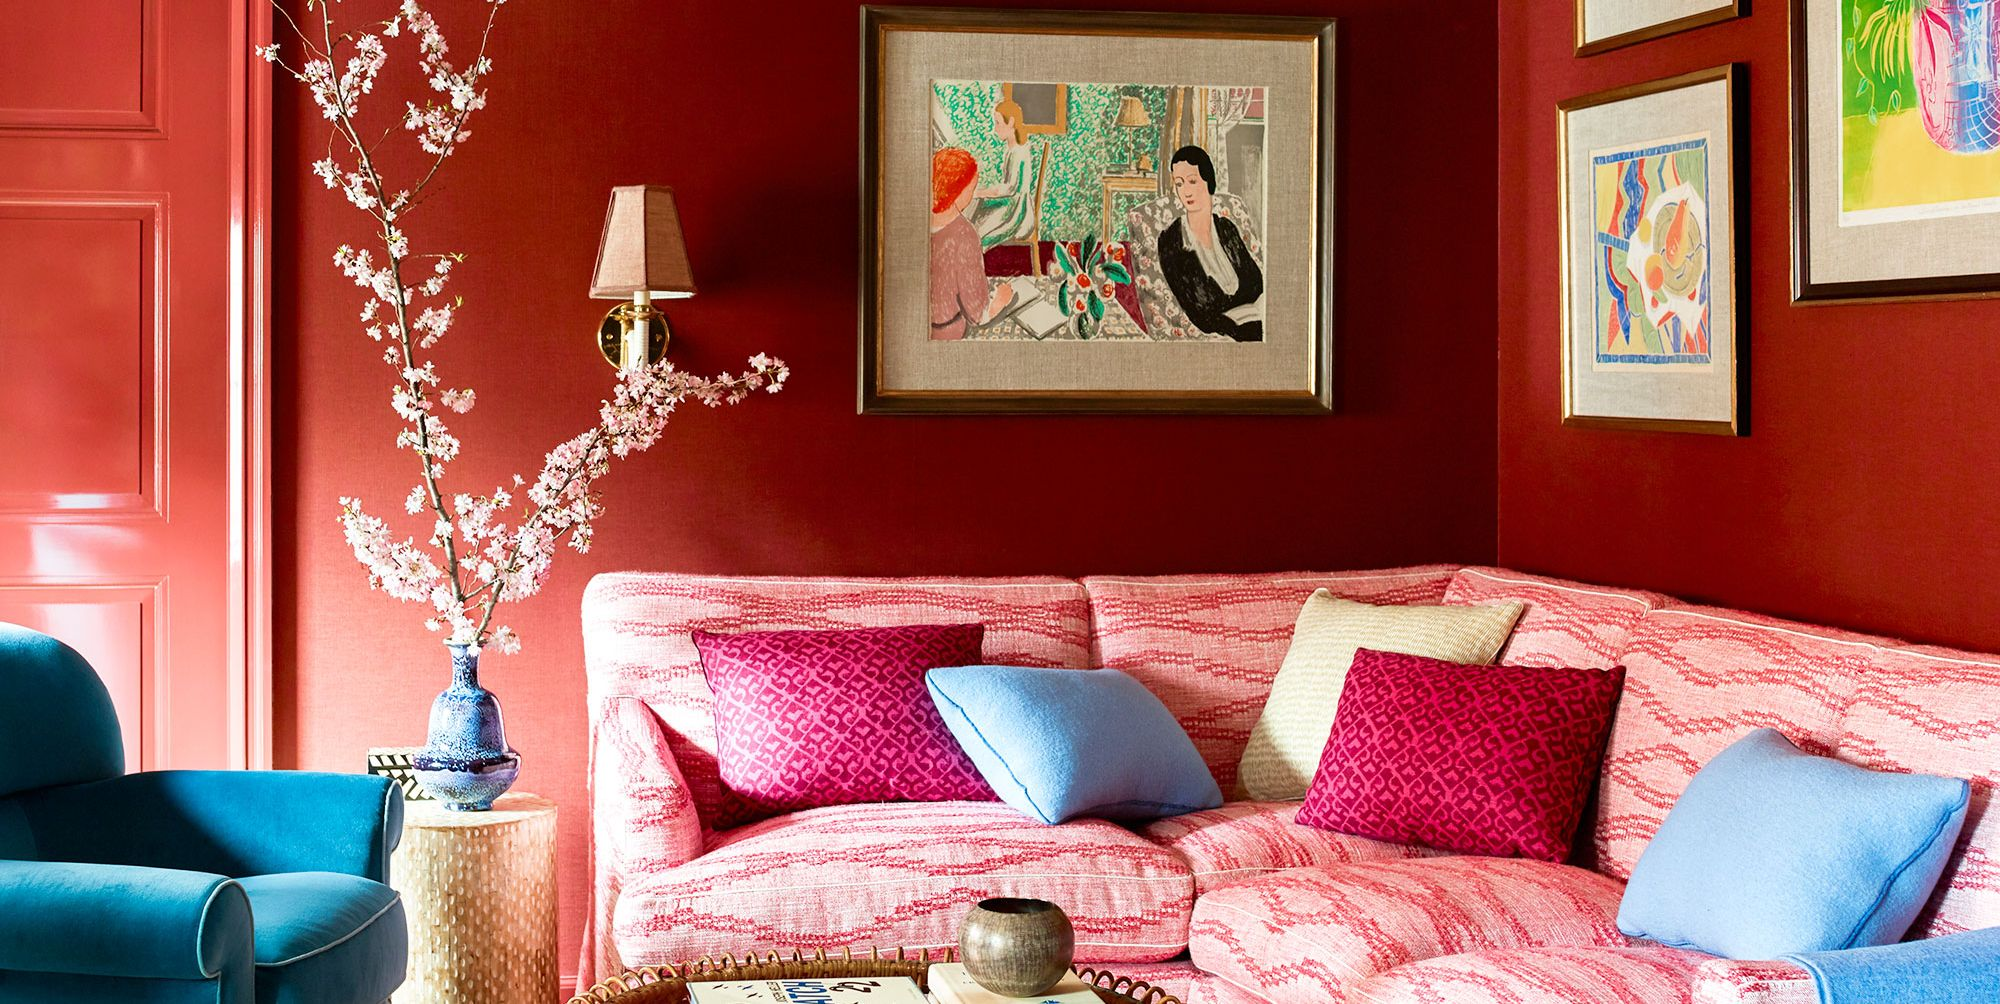 16 Best Small Living Room Ideas How To Decorate A Small Living Room